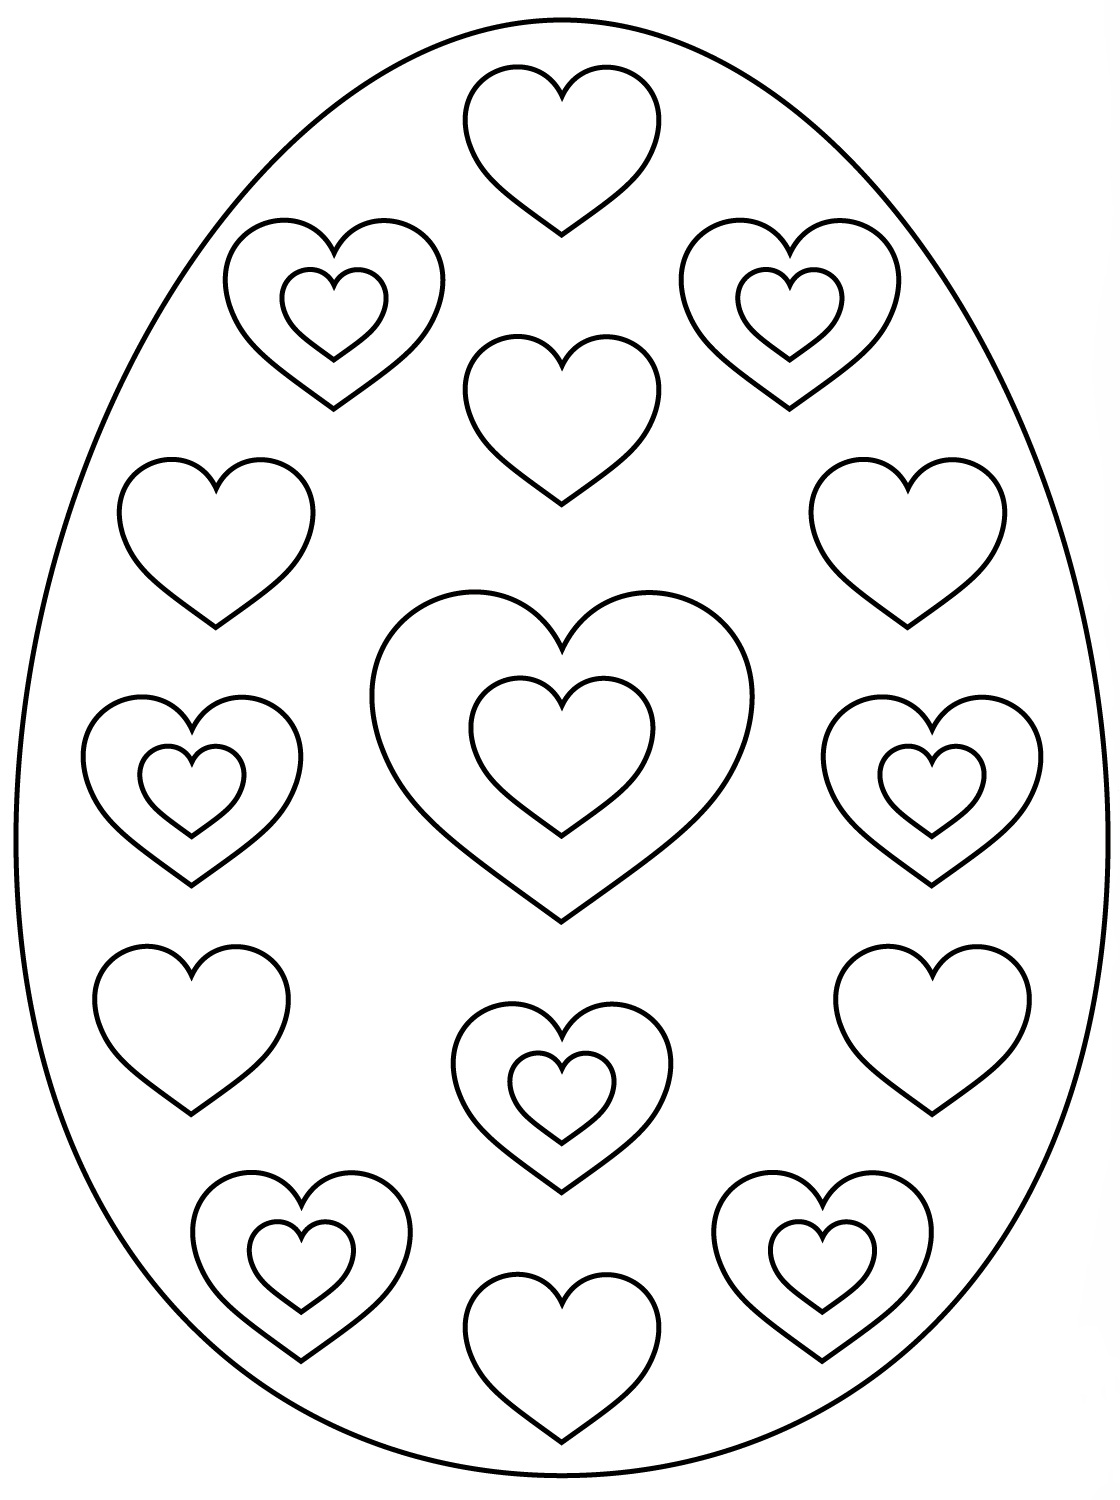 Easter Egg Hearts Pattern